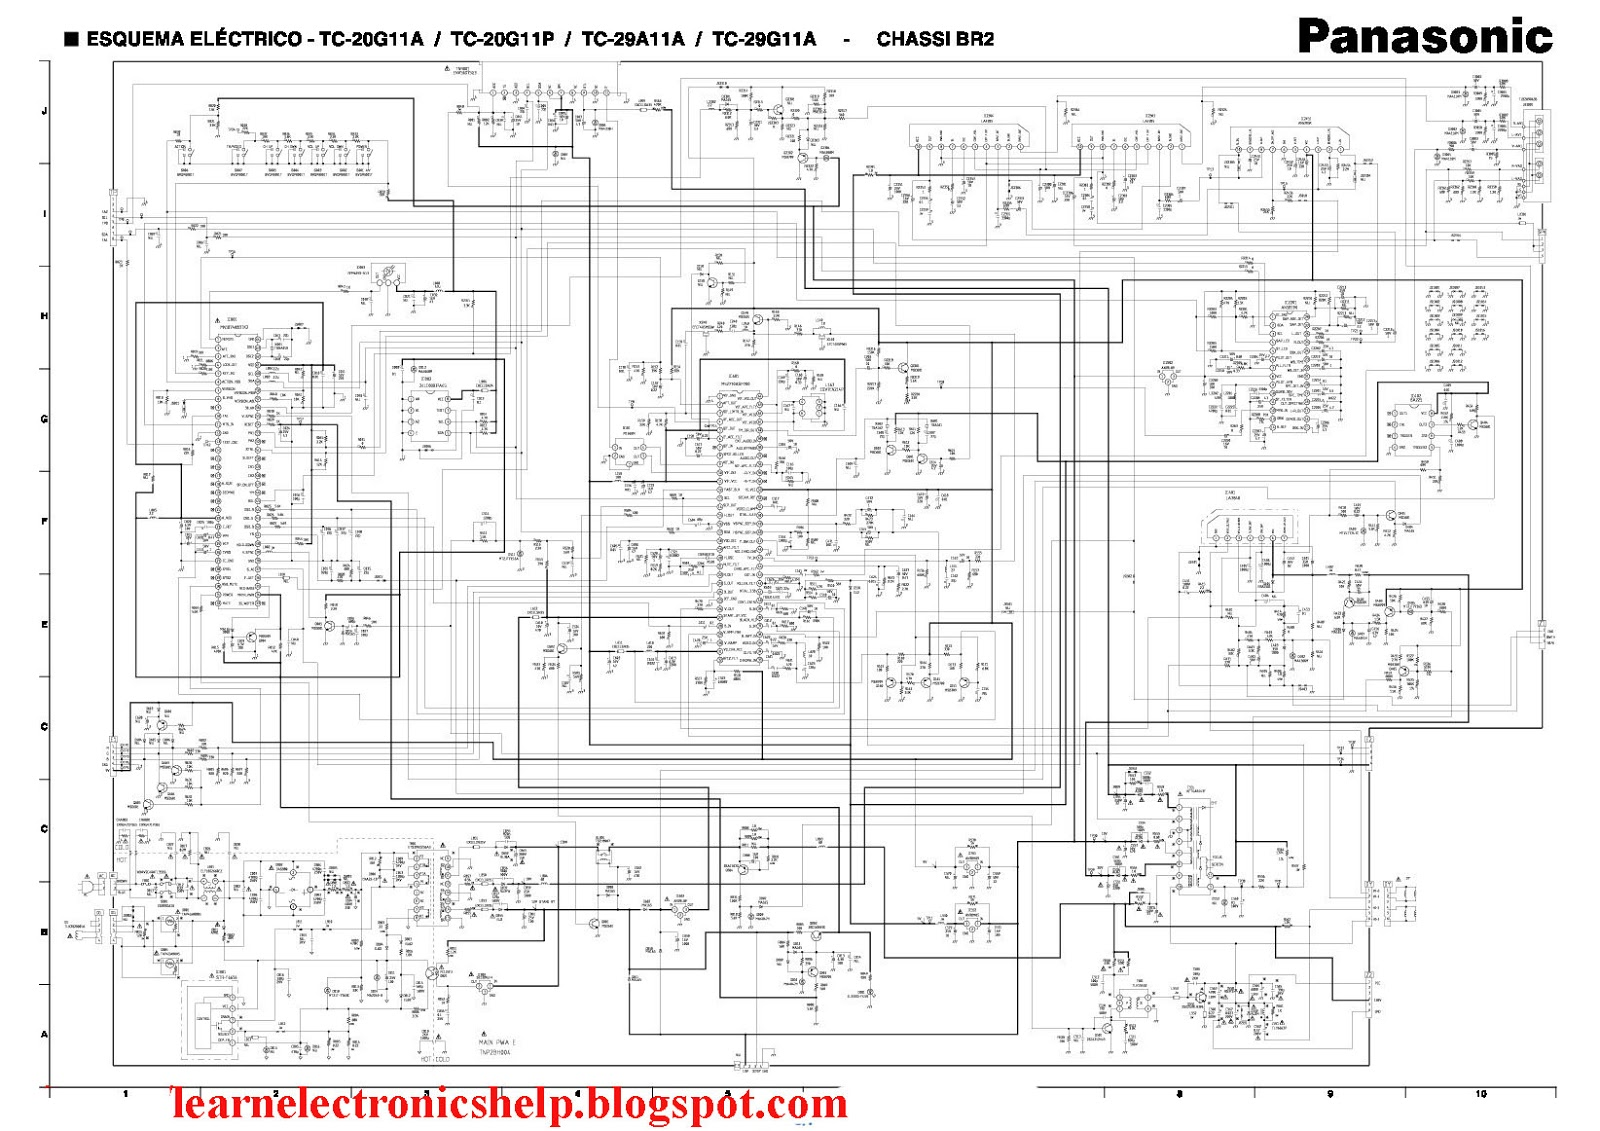 hight resolution of panasonic schematic diagram circuit simple wiring diagram schema panasonic microwave oven parts list panasonic schematic diagram